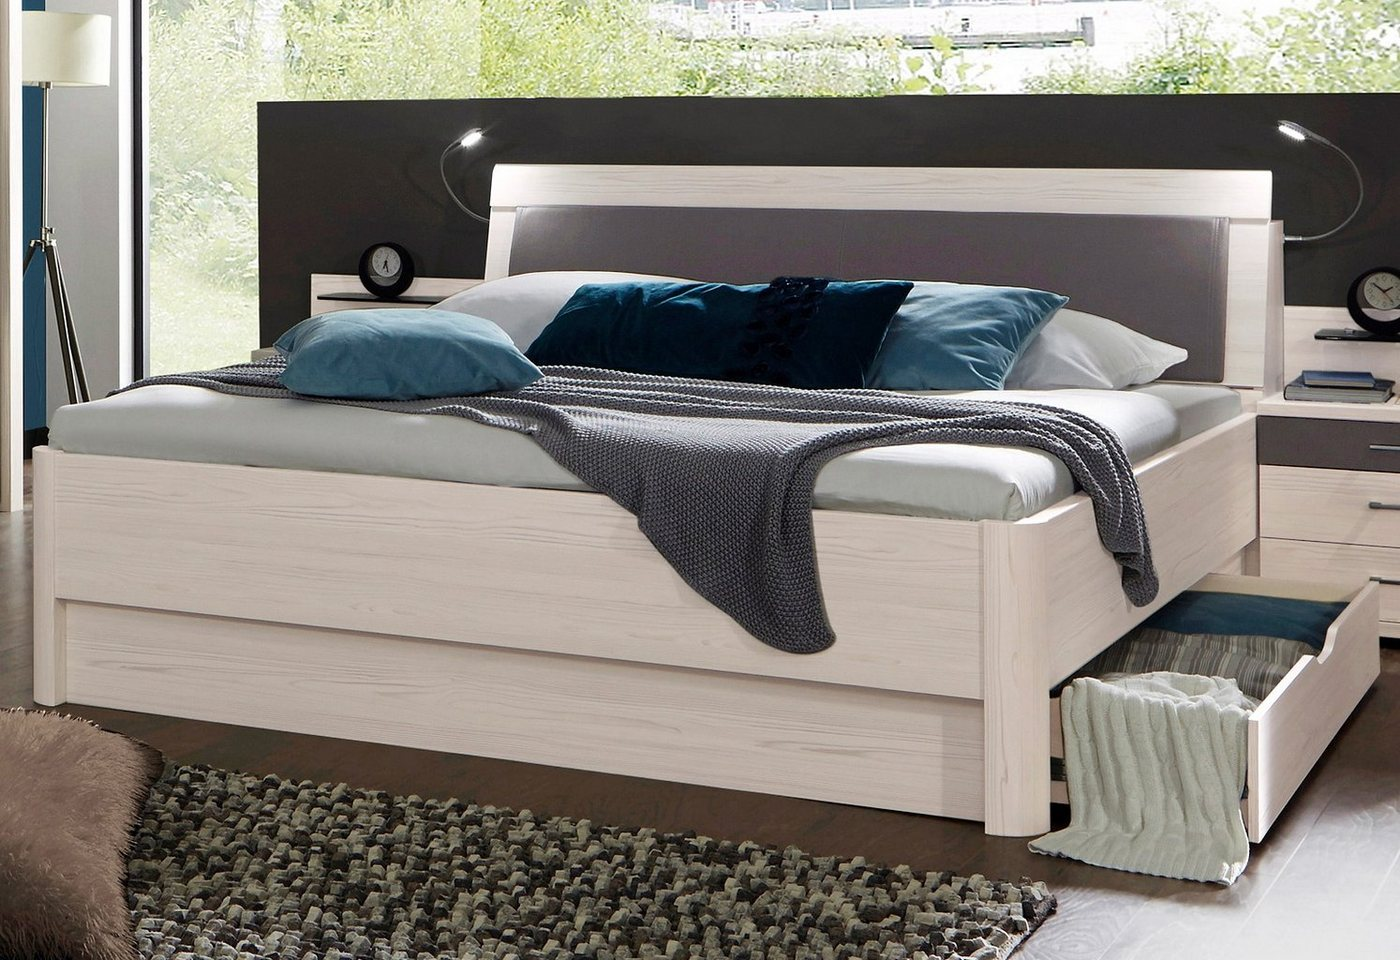 WIEMANN Bed met pool-lariks decor